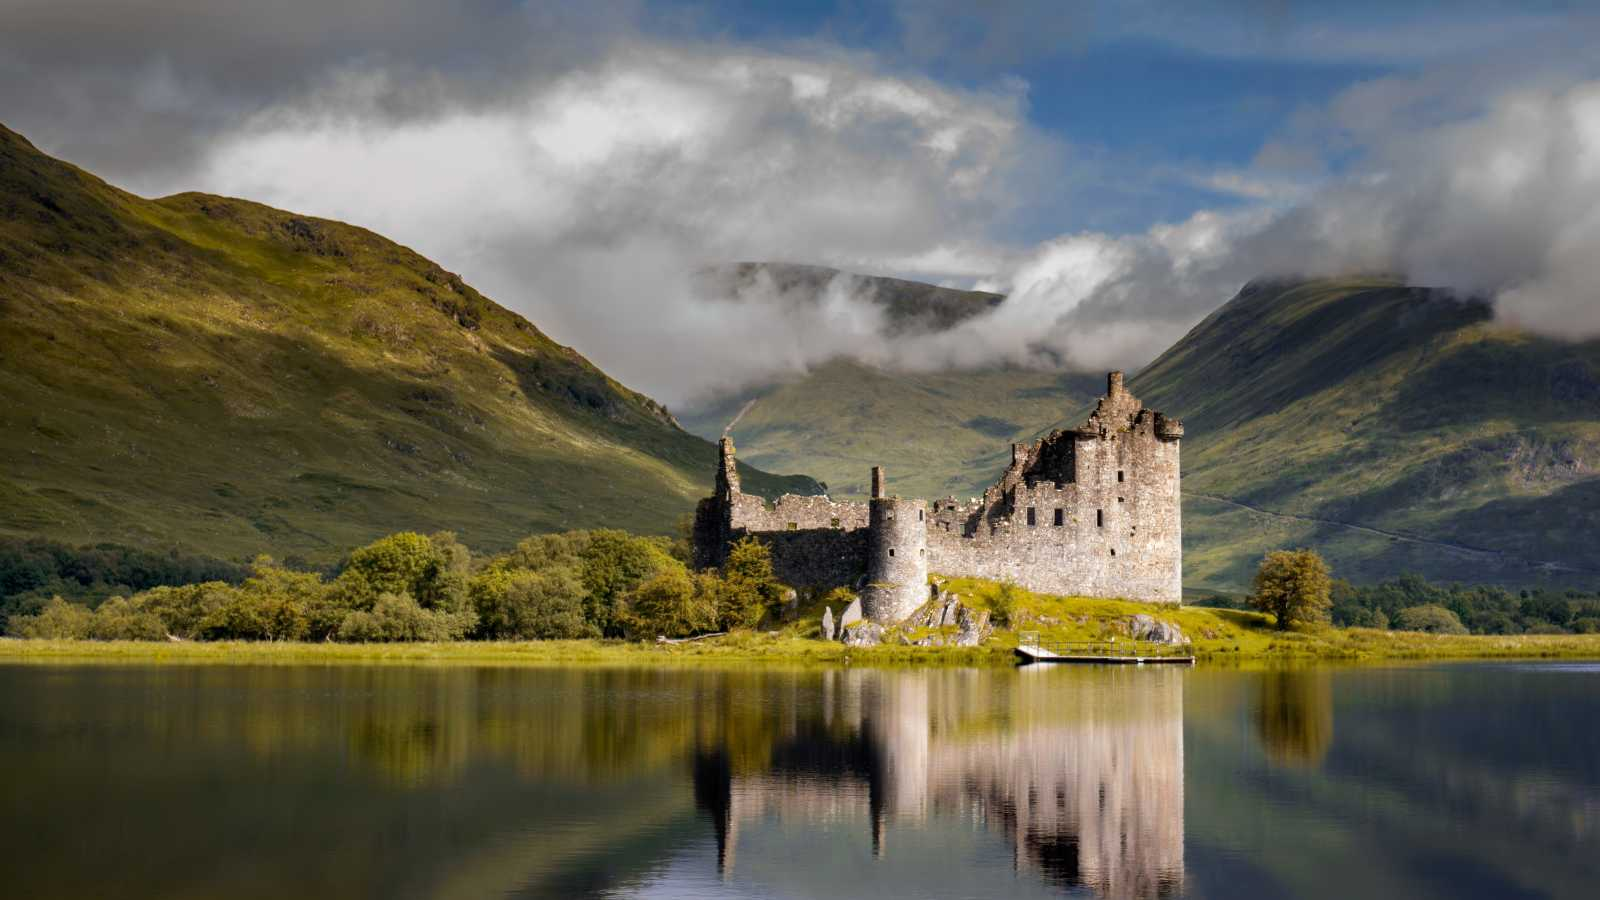 Framed by the dramatic green landscapes, visit Urquart Castle on a tour package to Scotland.